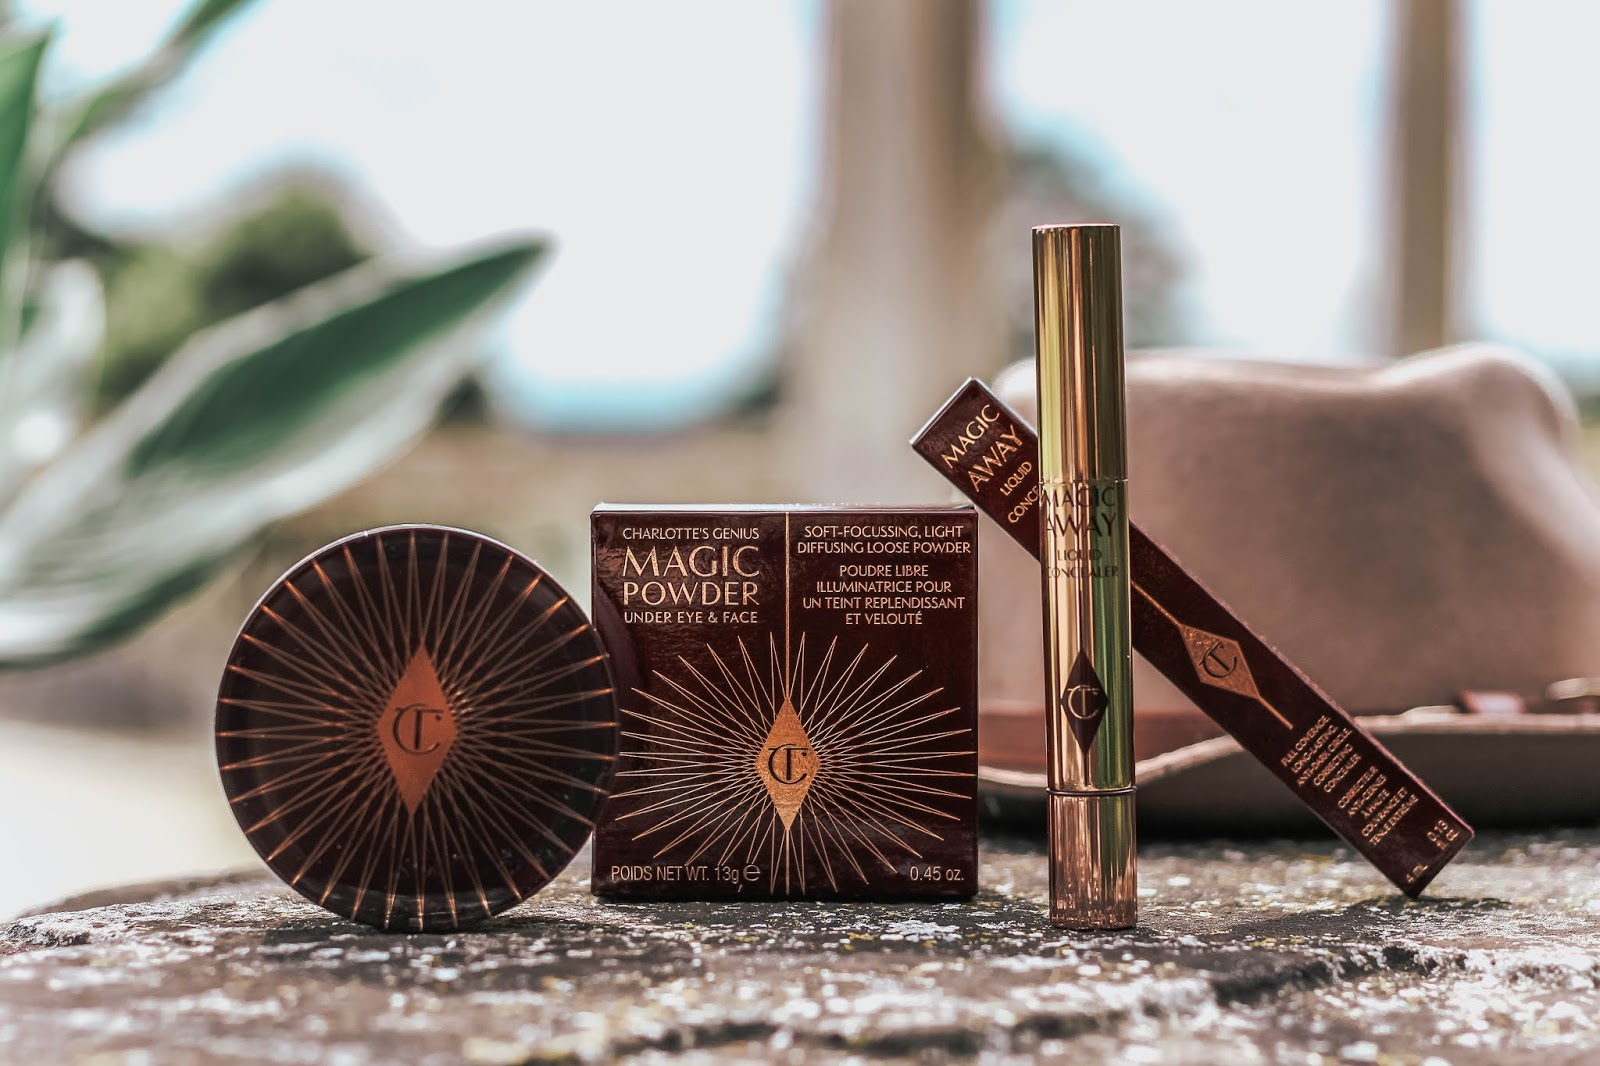 Charlotte Tilbury UK Beauty Blog Collaboration